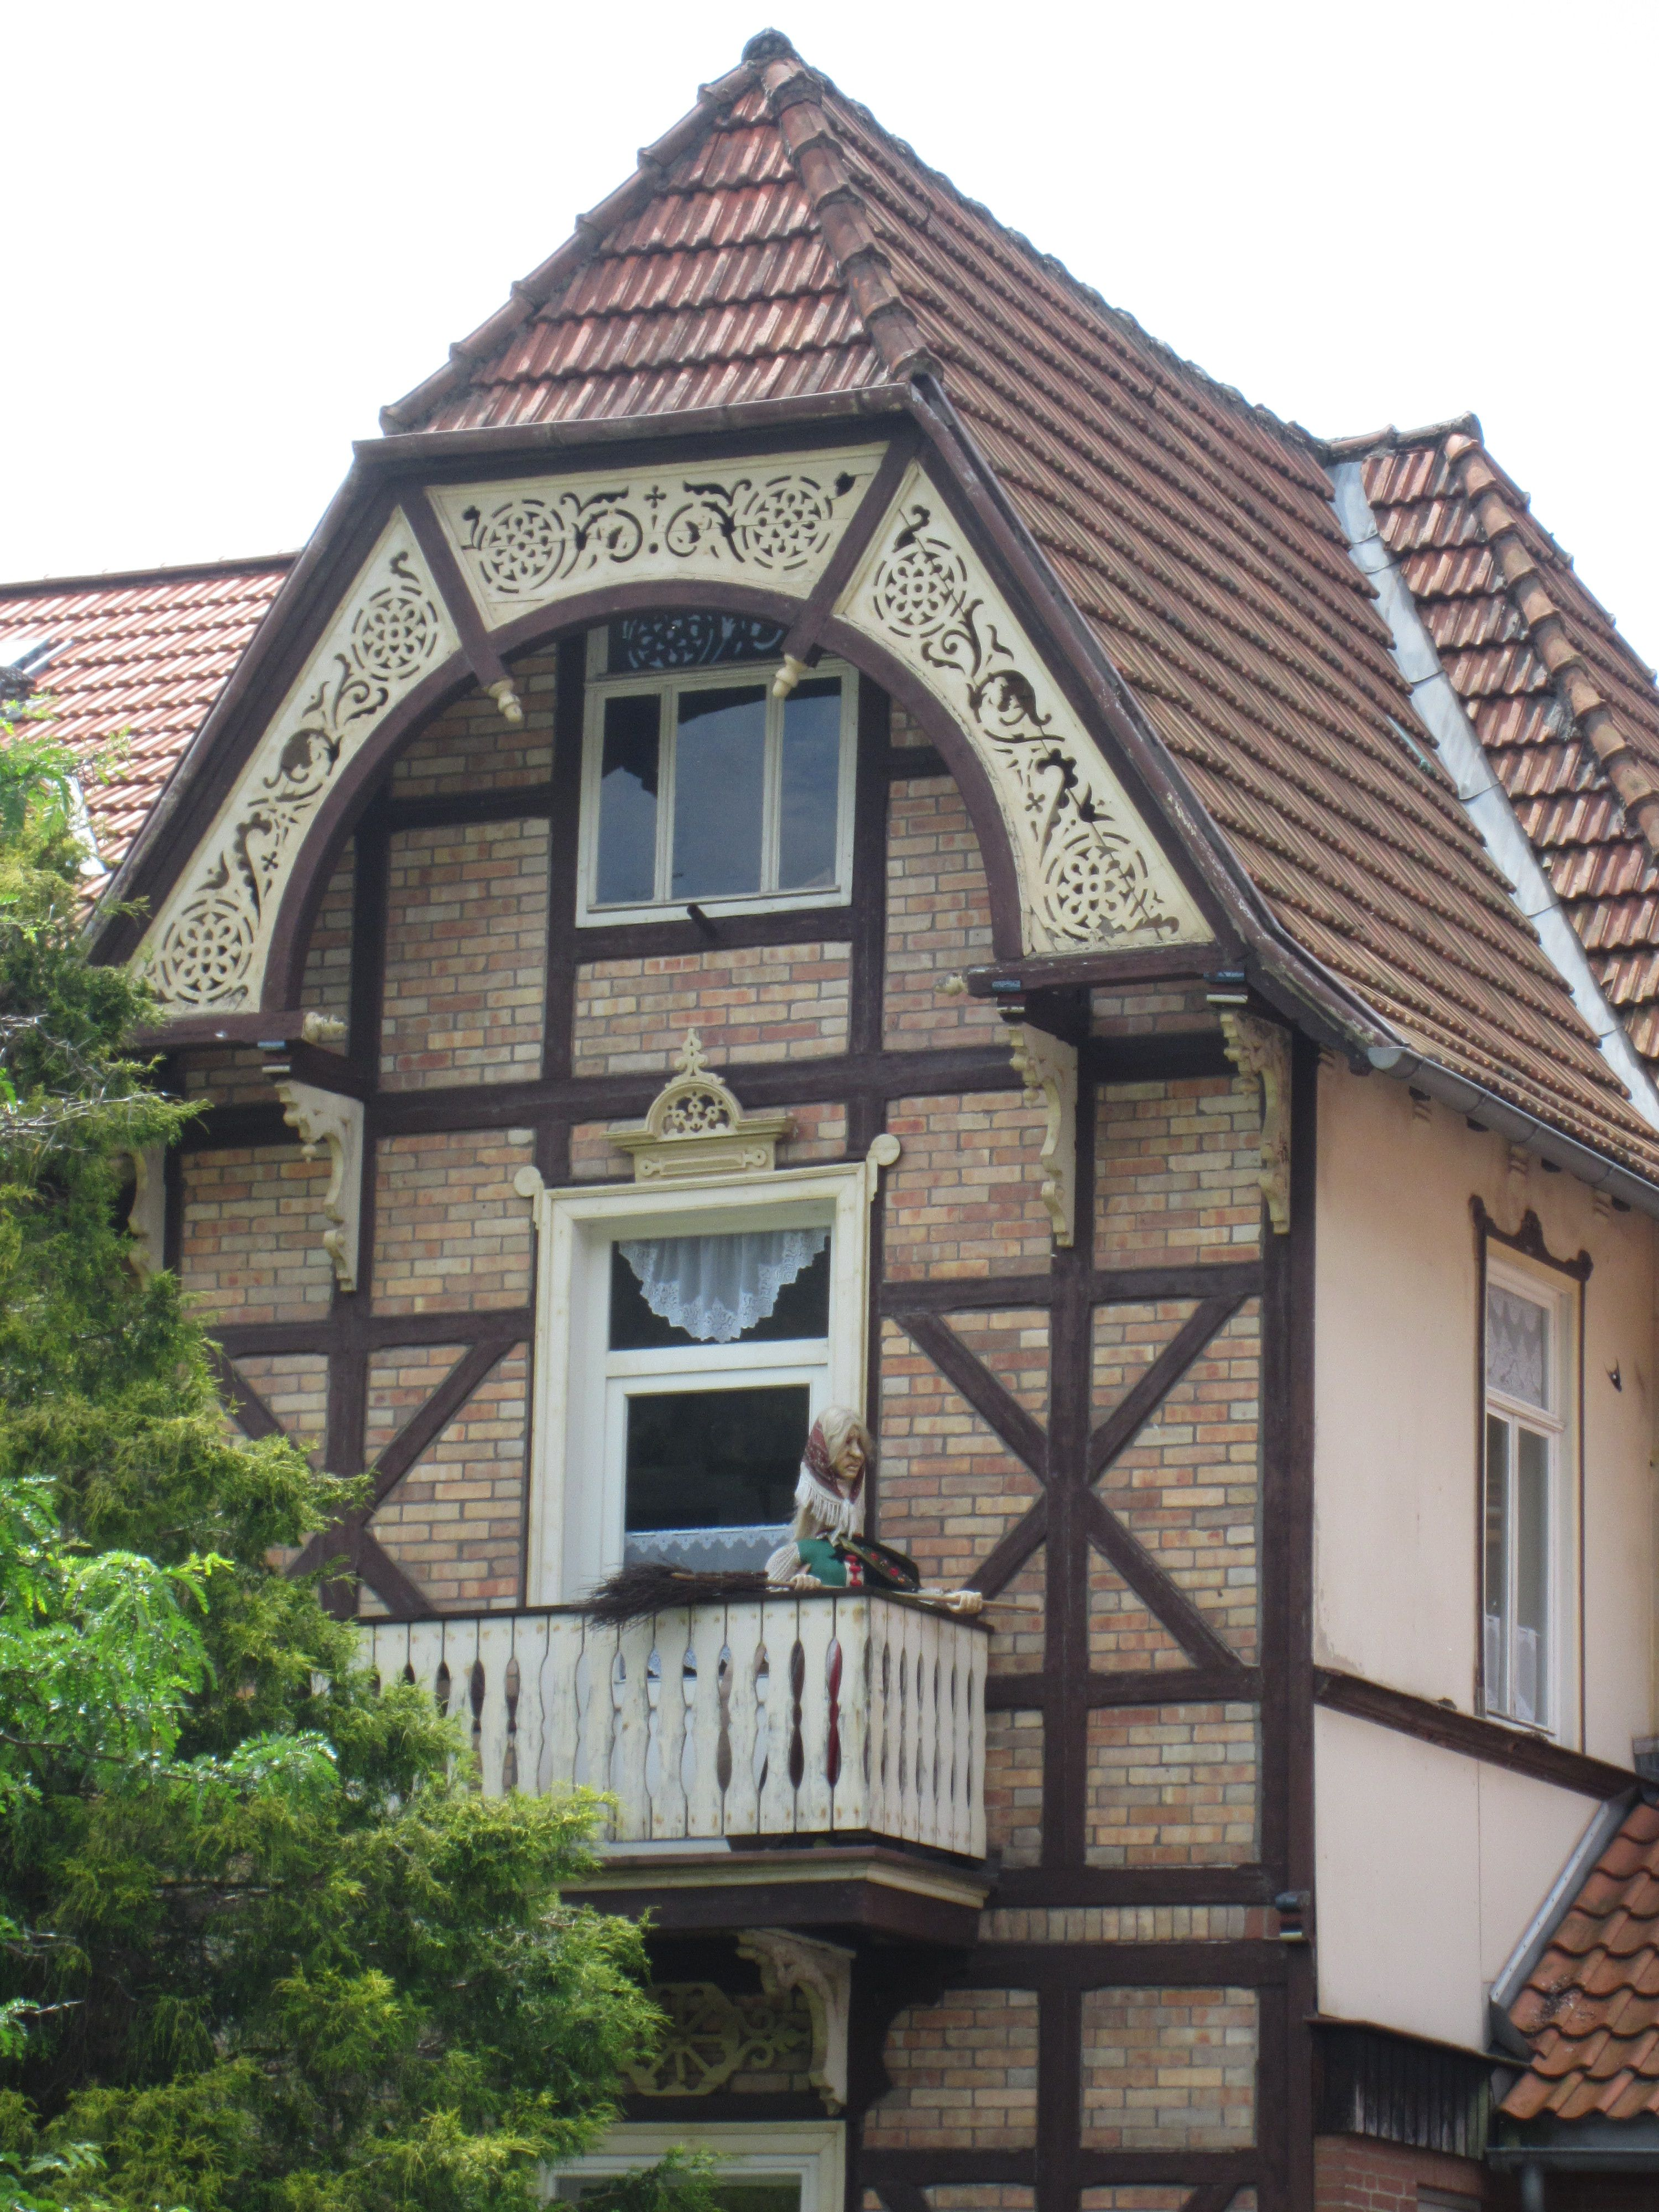 German House Designs: Haus-in-bad-sachsa-with-brocken-witch-on-balcony.jpg 3,000